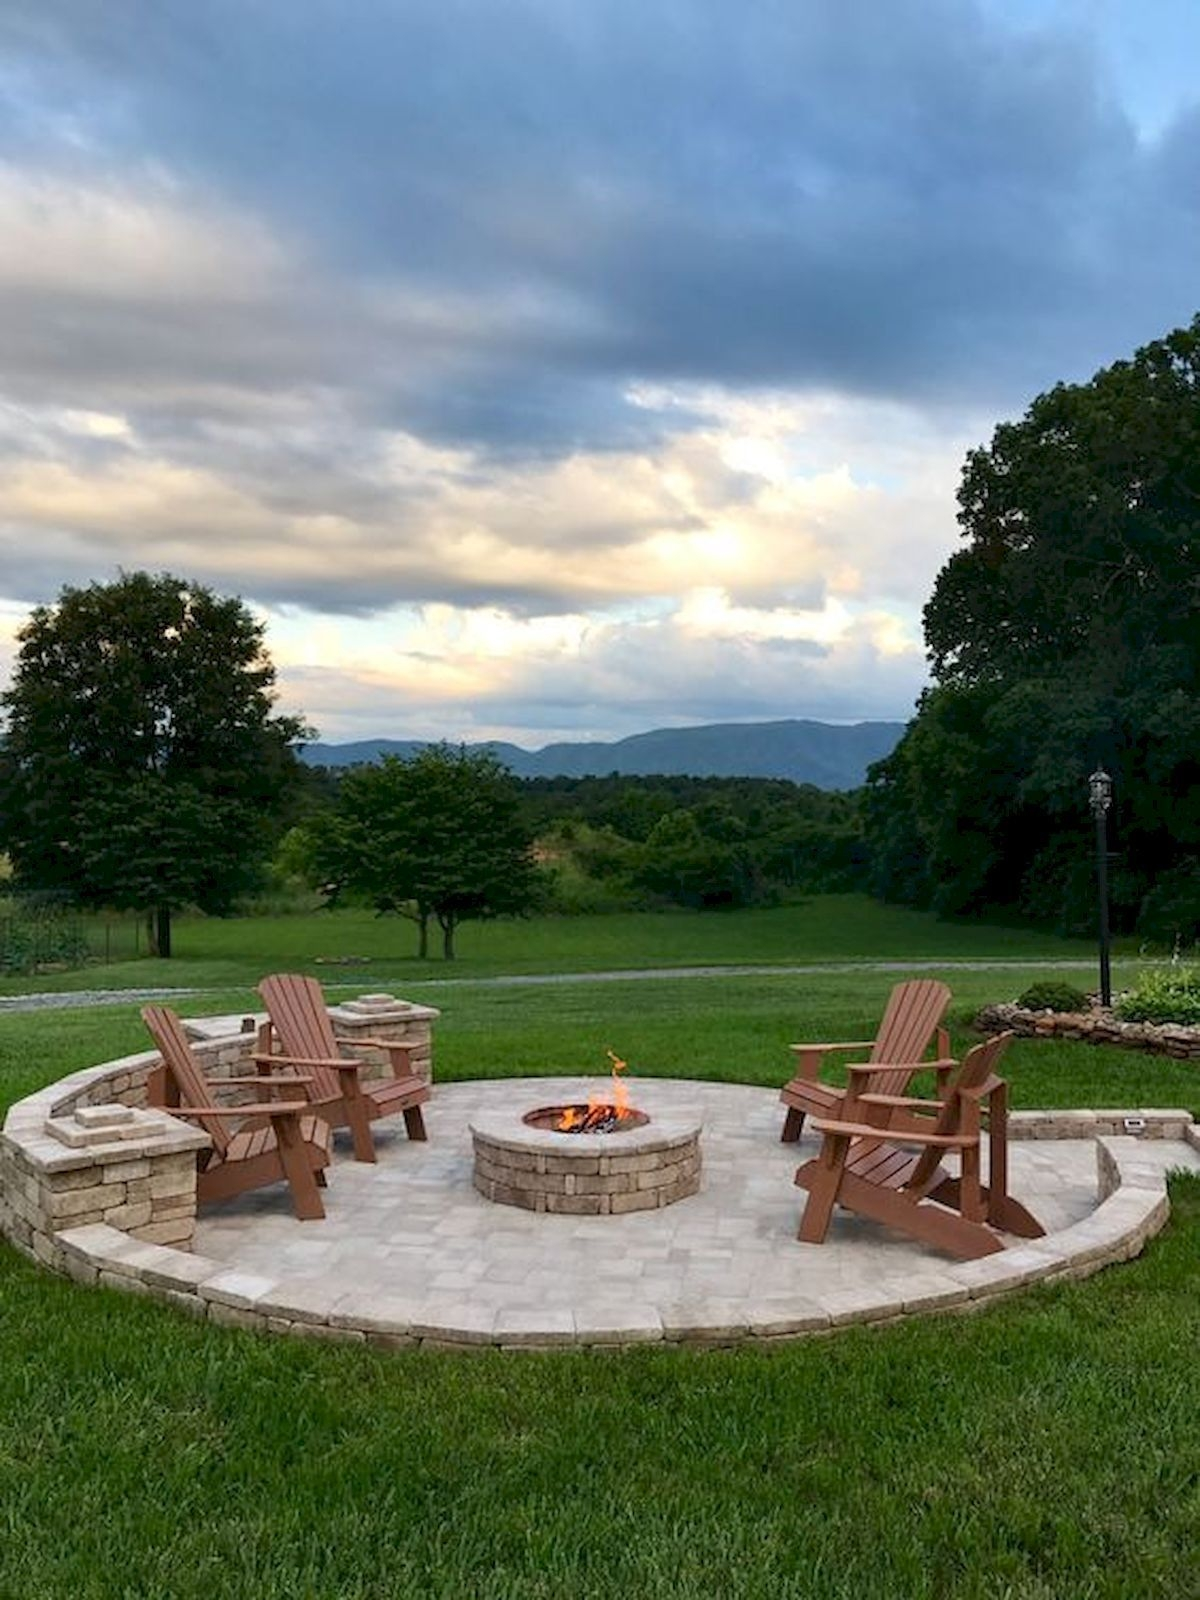 Inspiring Outdoor Fire Pit Design Ideas To Try45